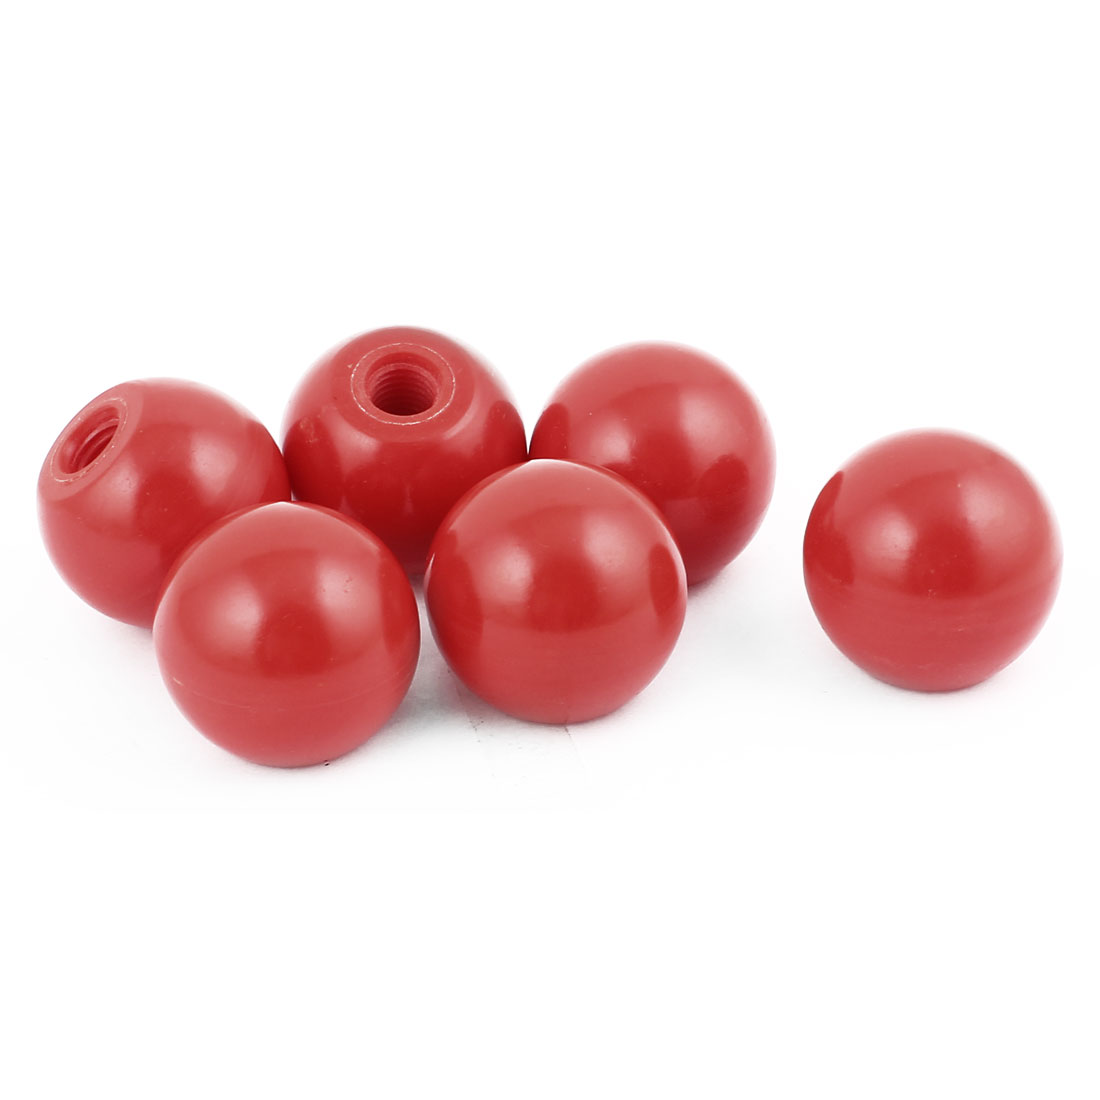 6 Pcs 35mm Dia Plastic Ball M10 Threaded Blind Hole Handling Knob Red